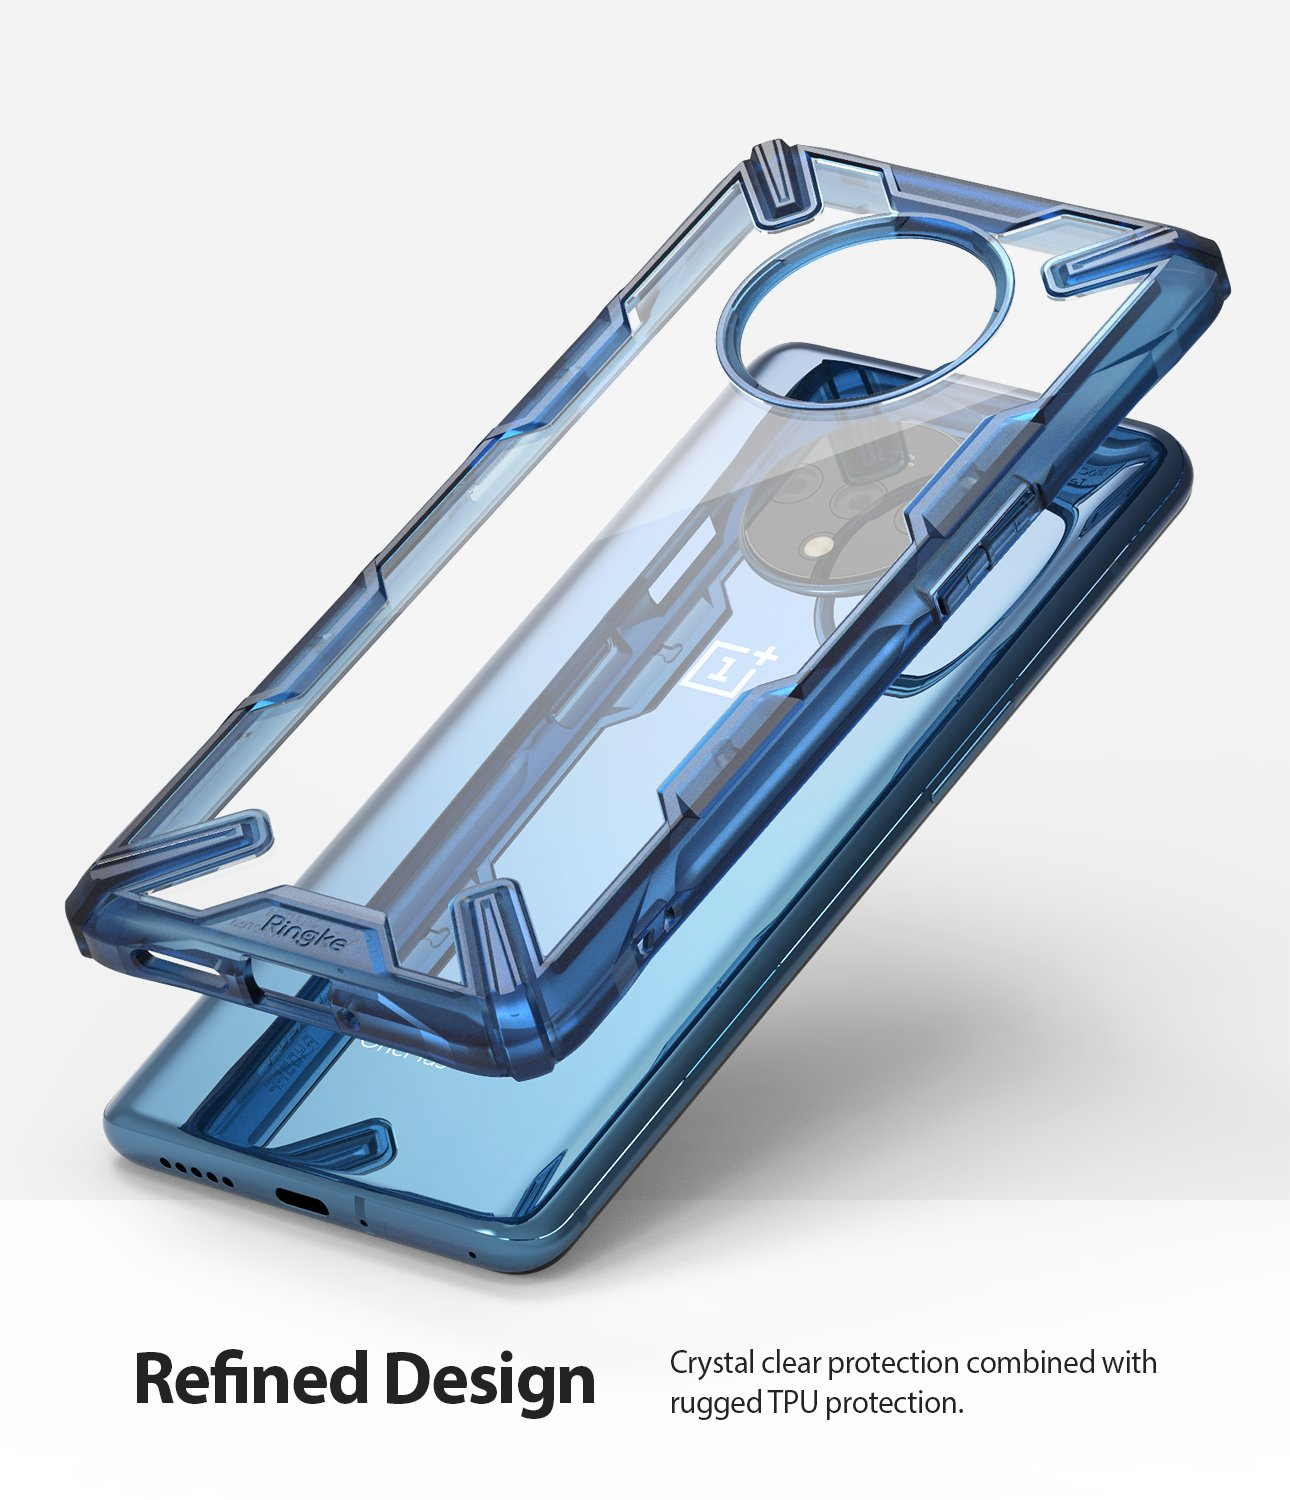 crystal clear protection combined with rugged tpu protection